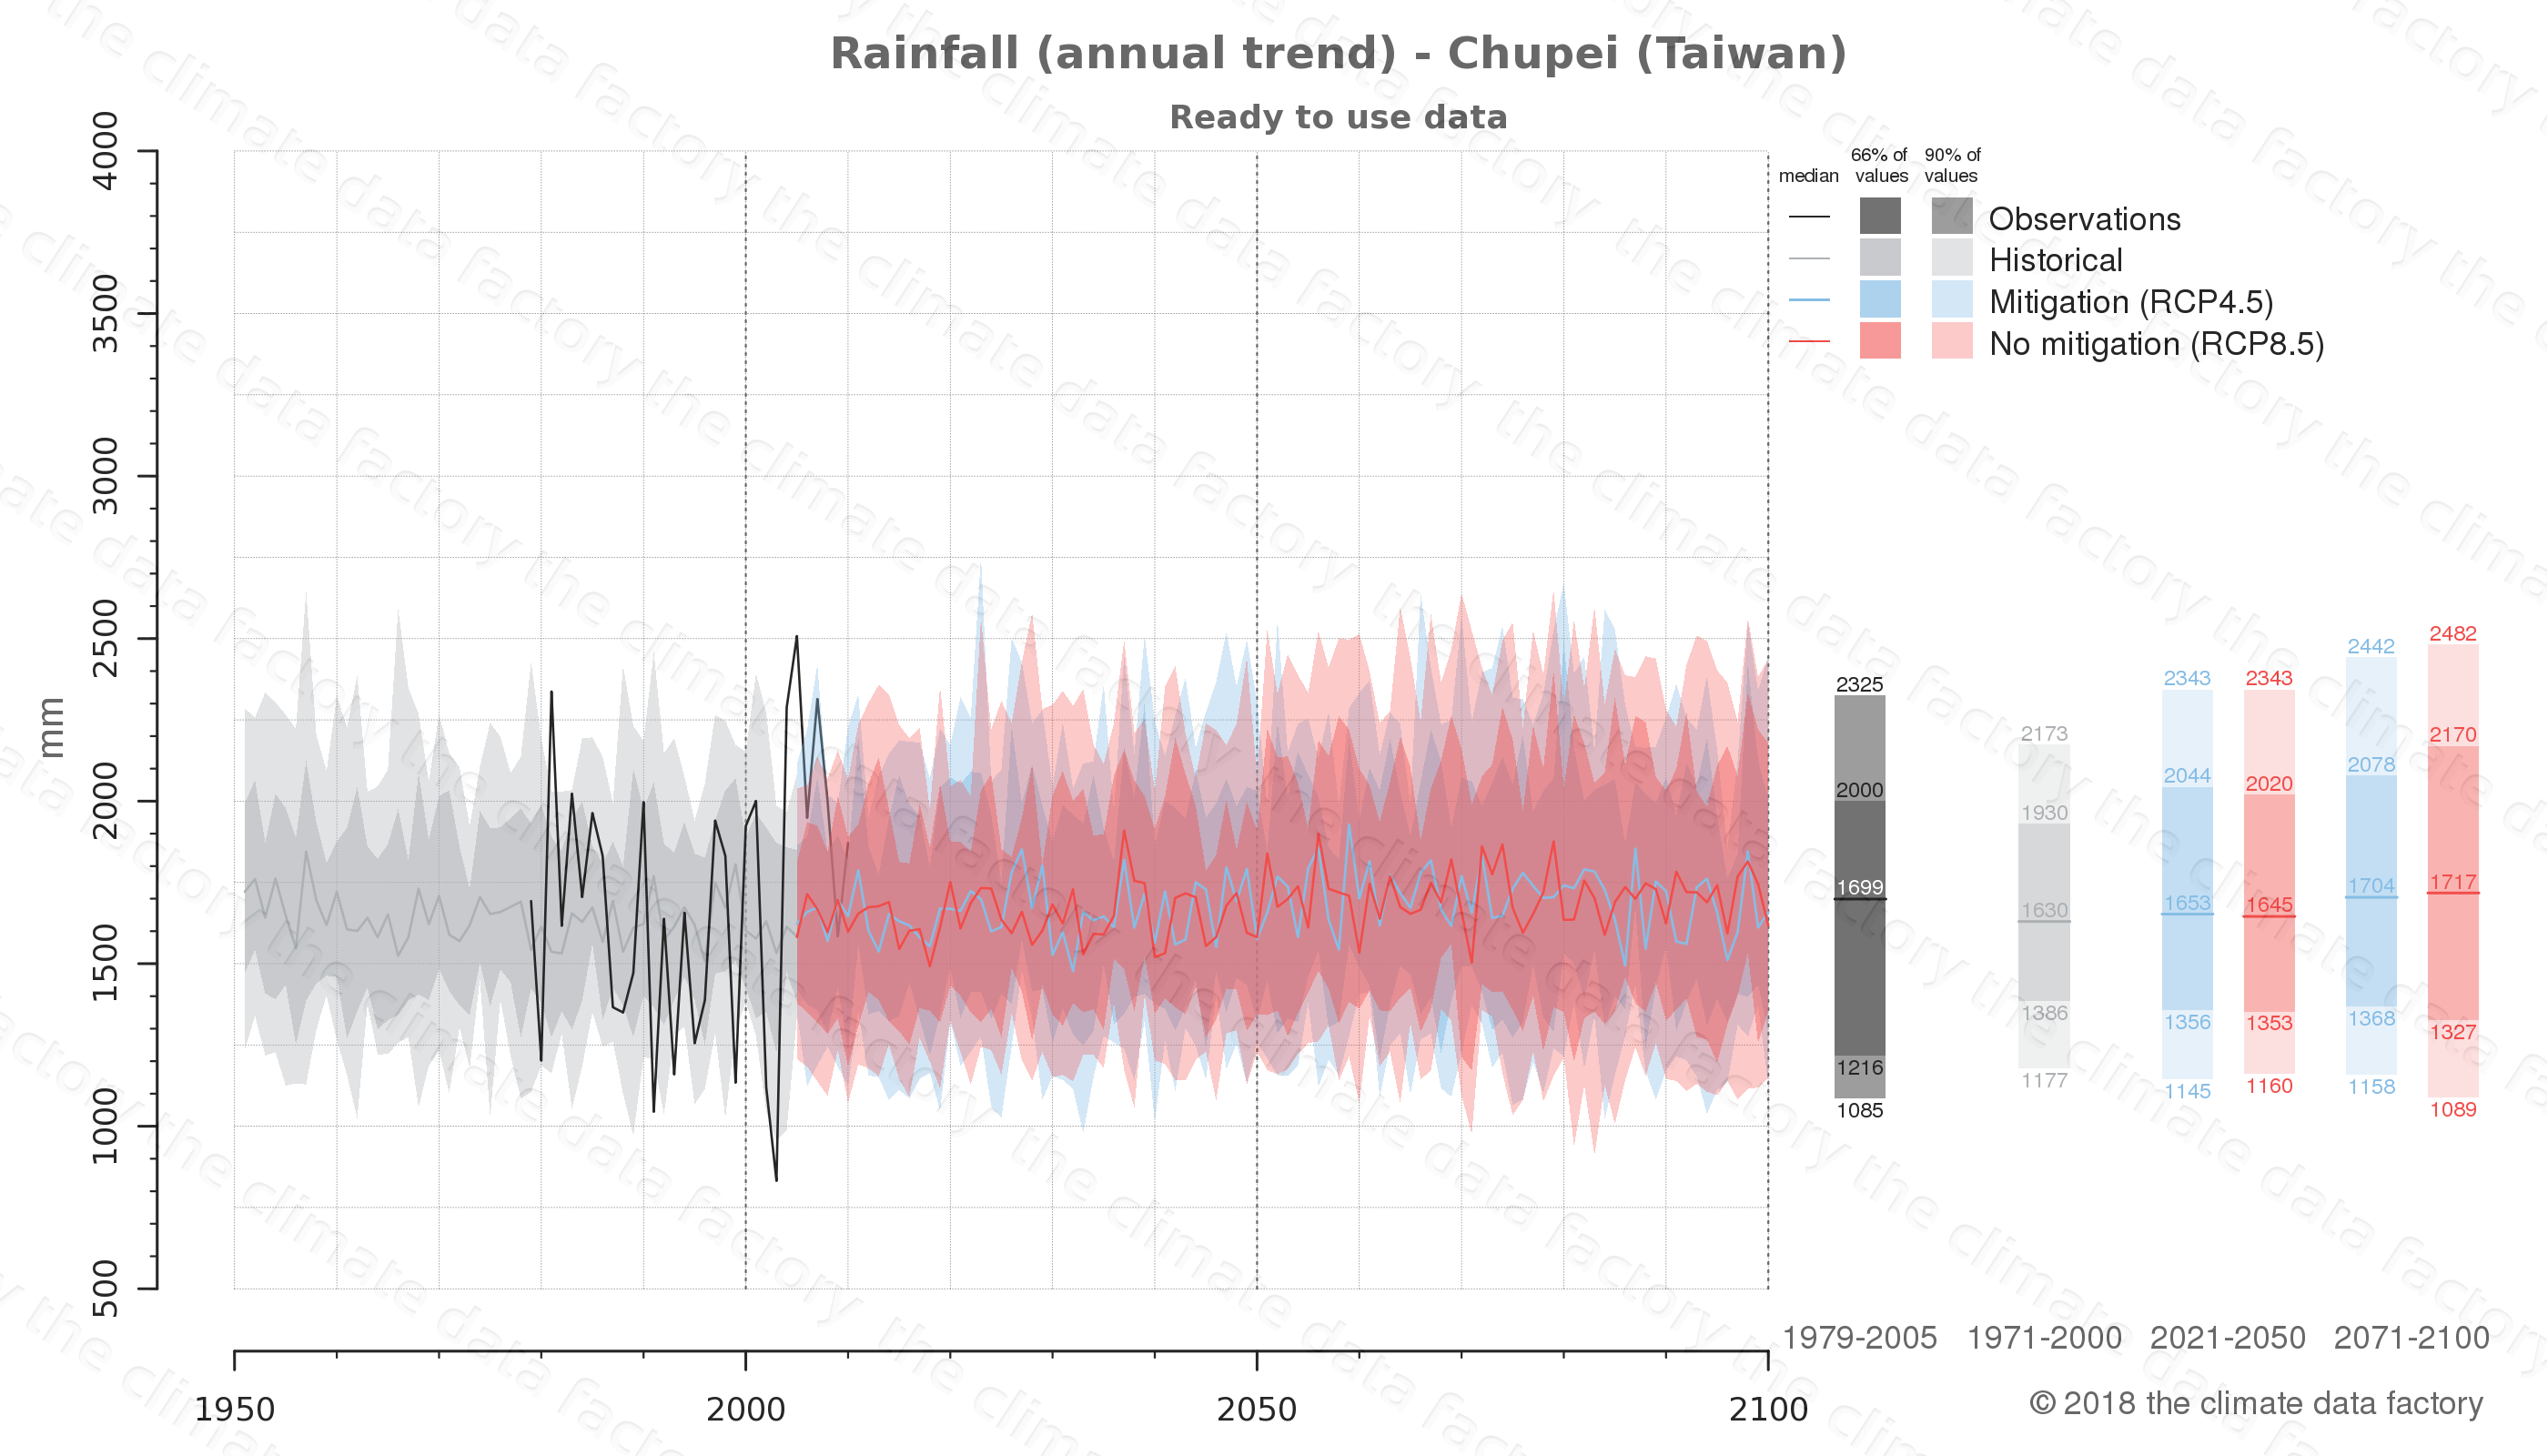 climate change data policy adaptation climate graph city data rainfall chupei taiwan